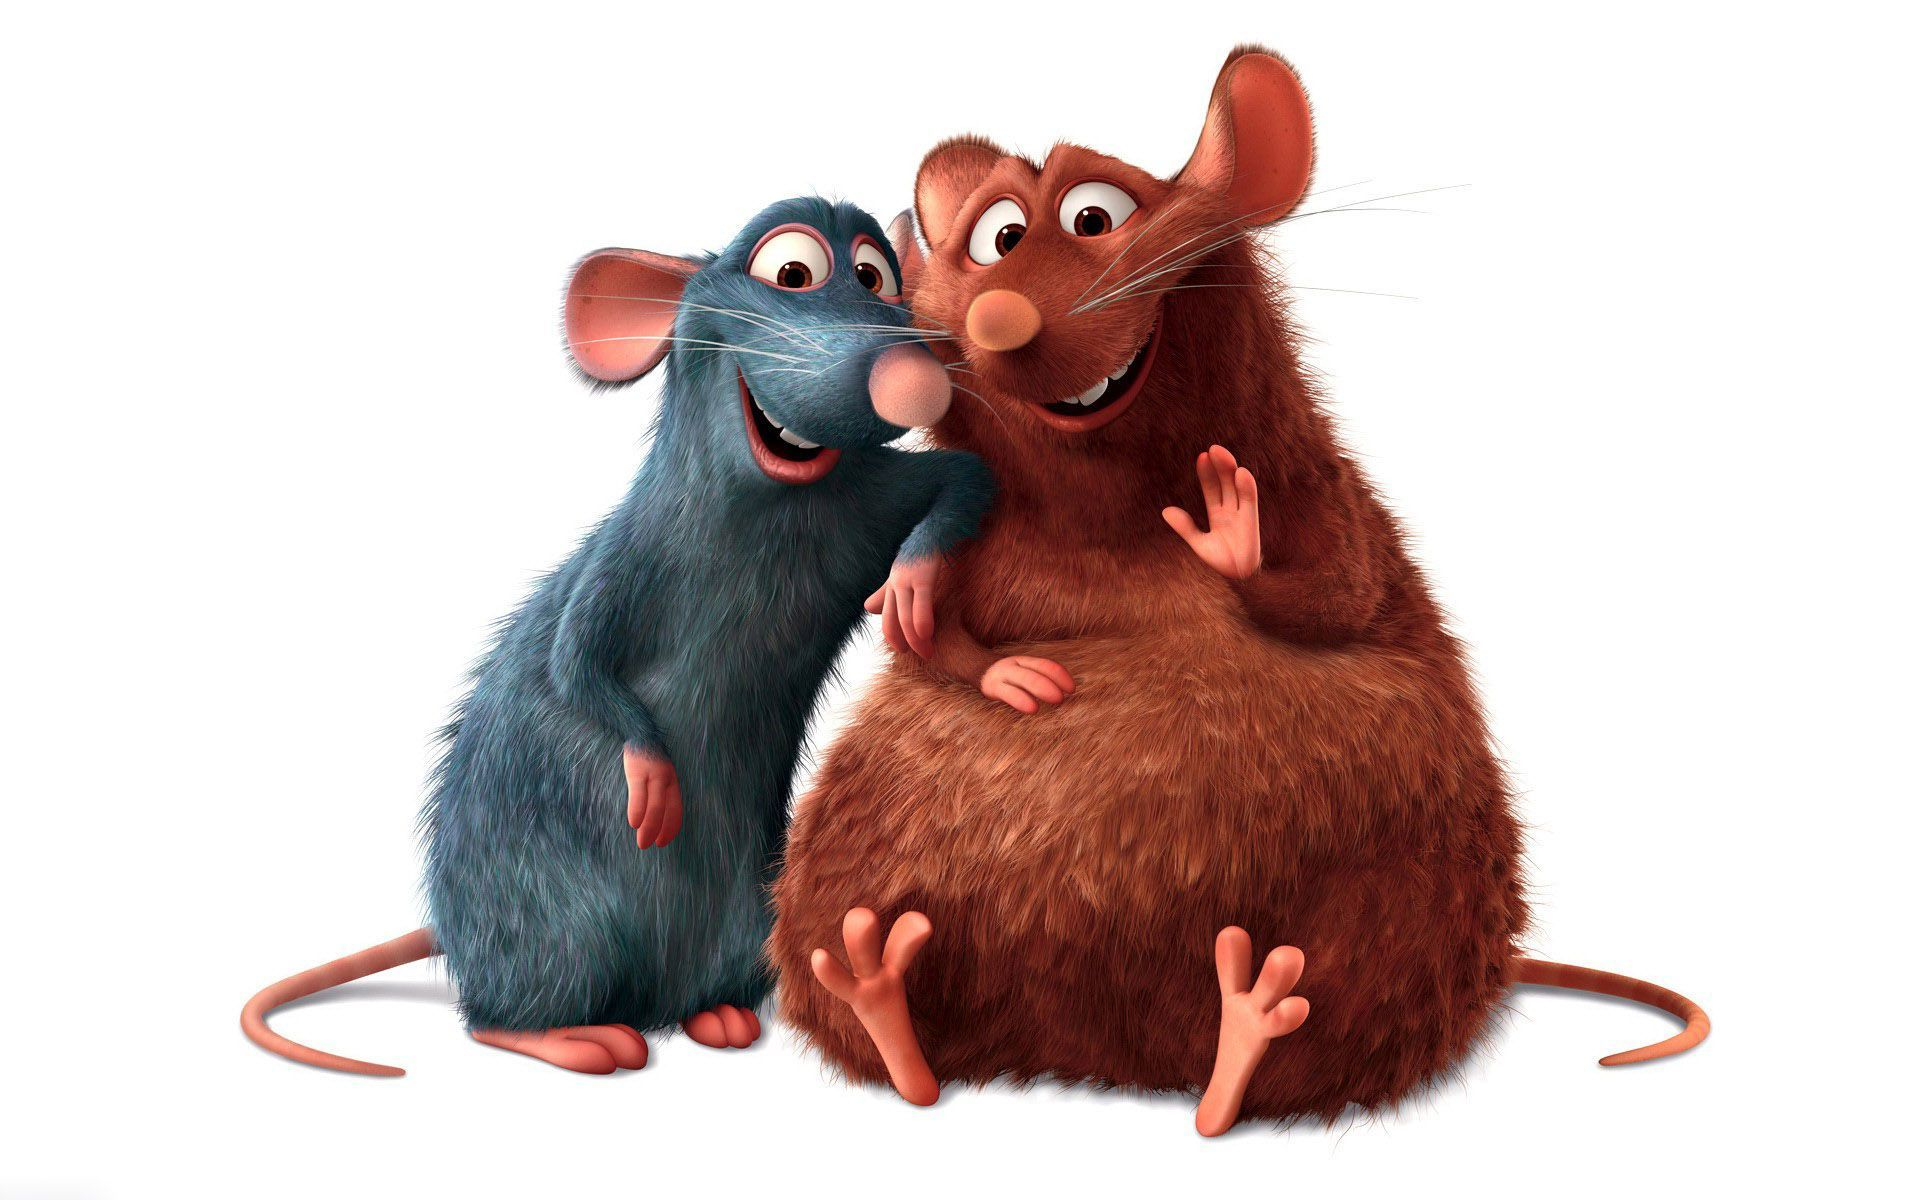 Ratatouille Remy And Emile Hd Wallpaper Background Image